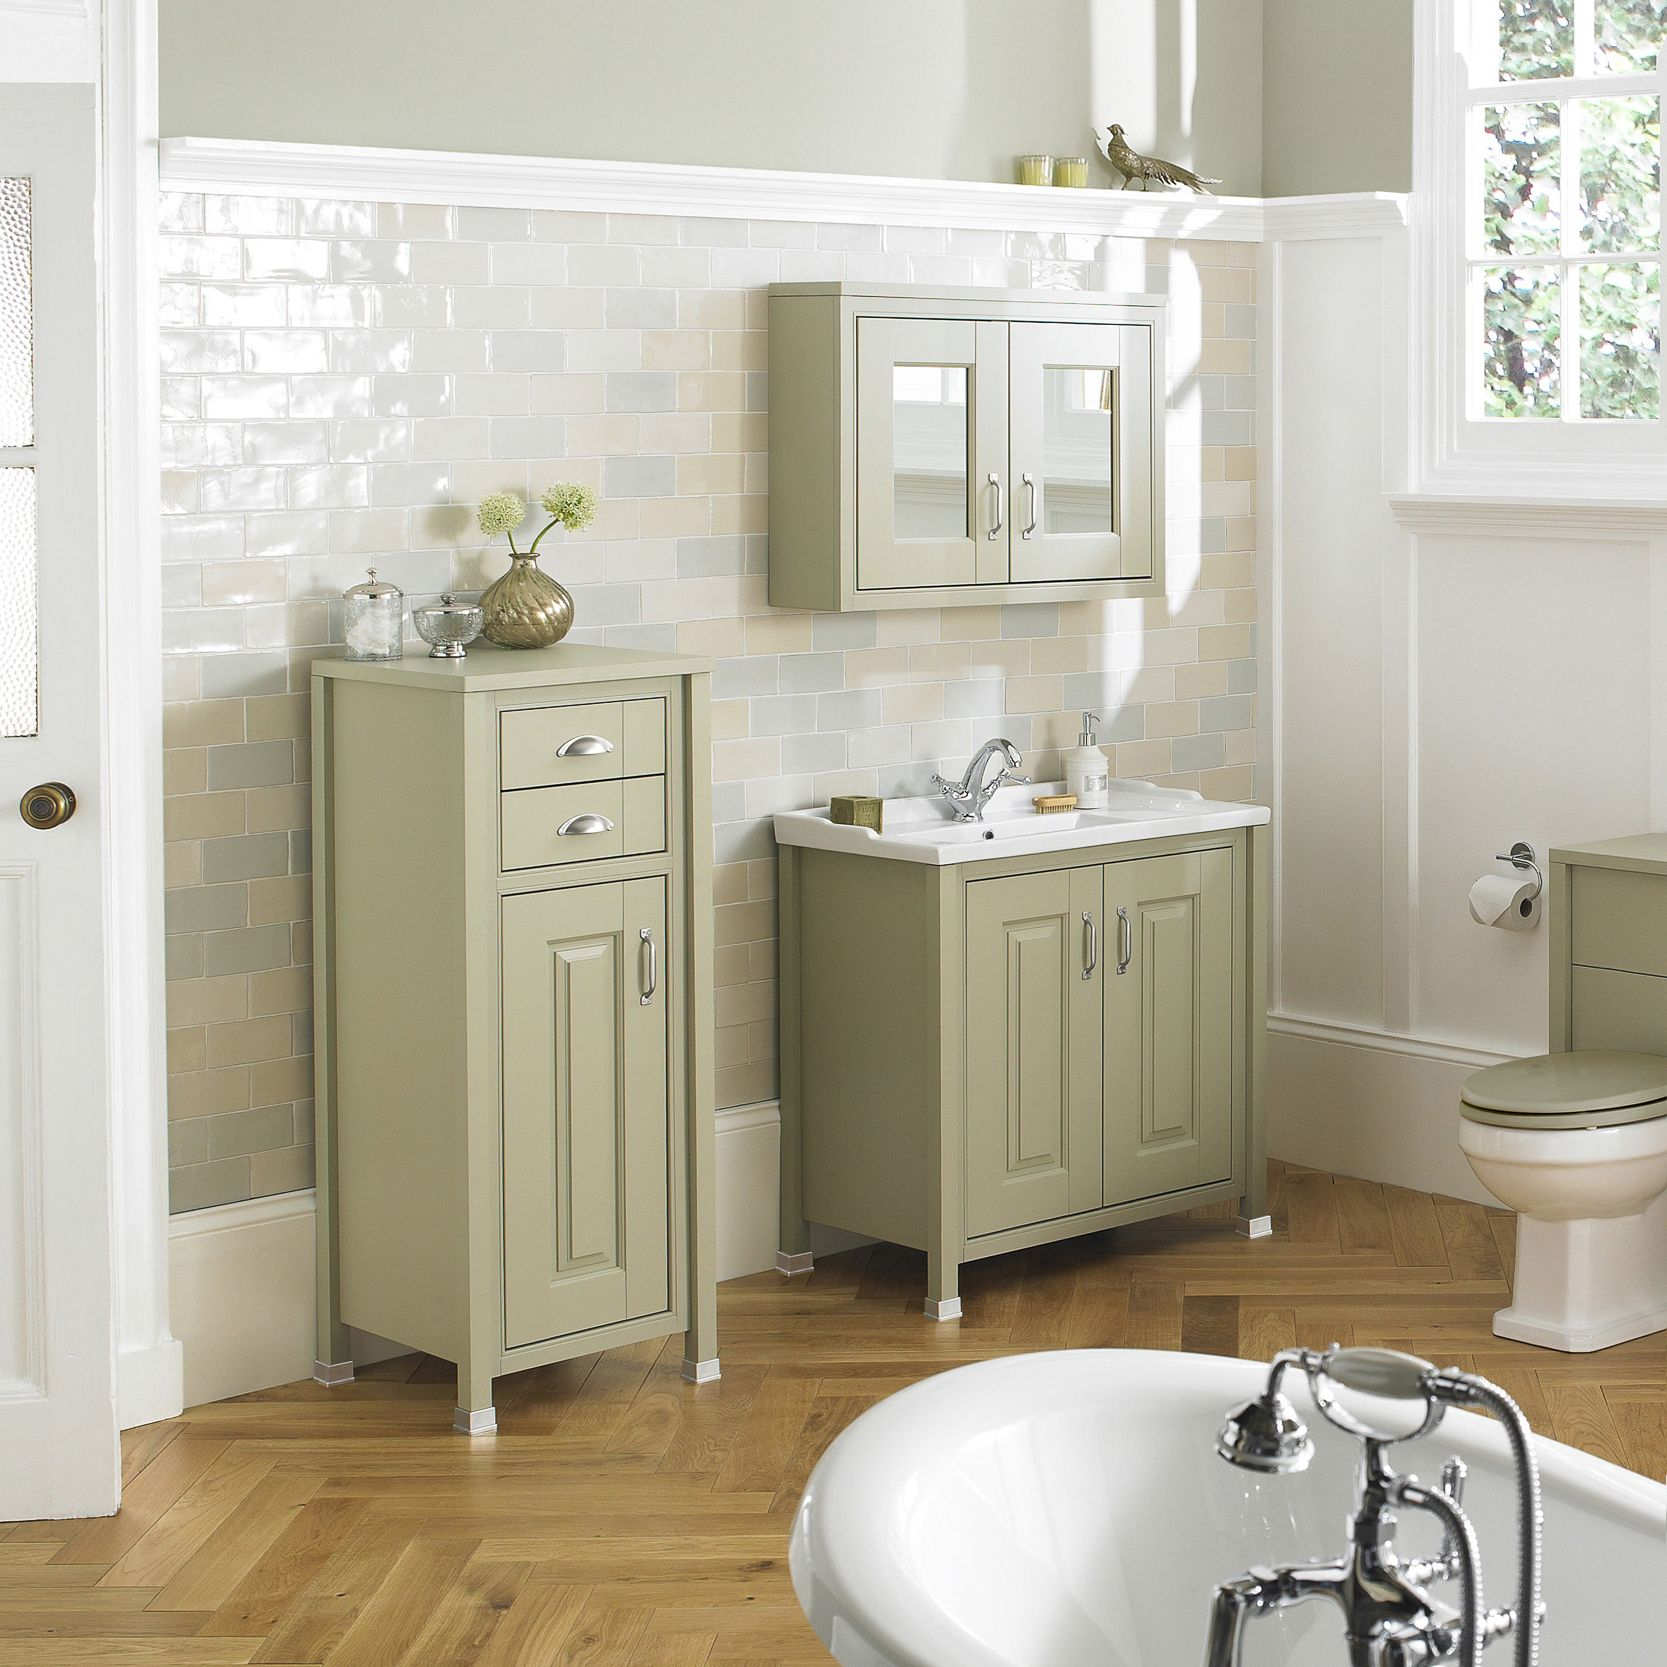 Our Old London range of traditional bathroom fixtures and furniture ...